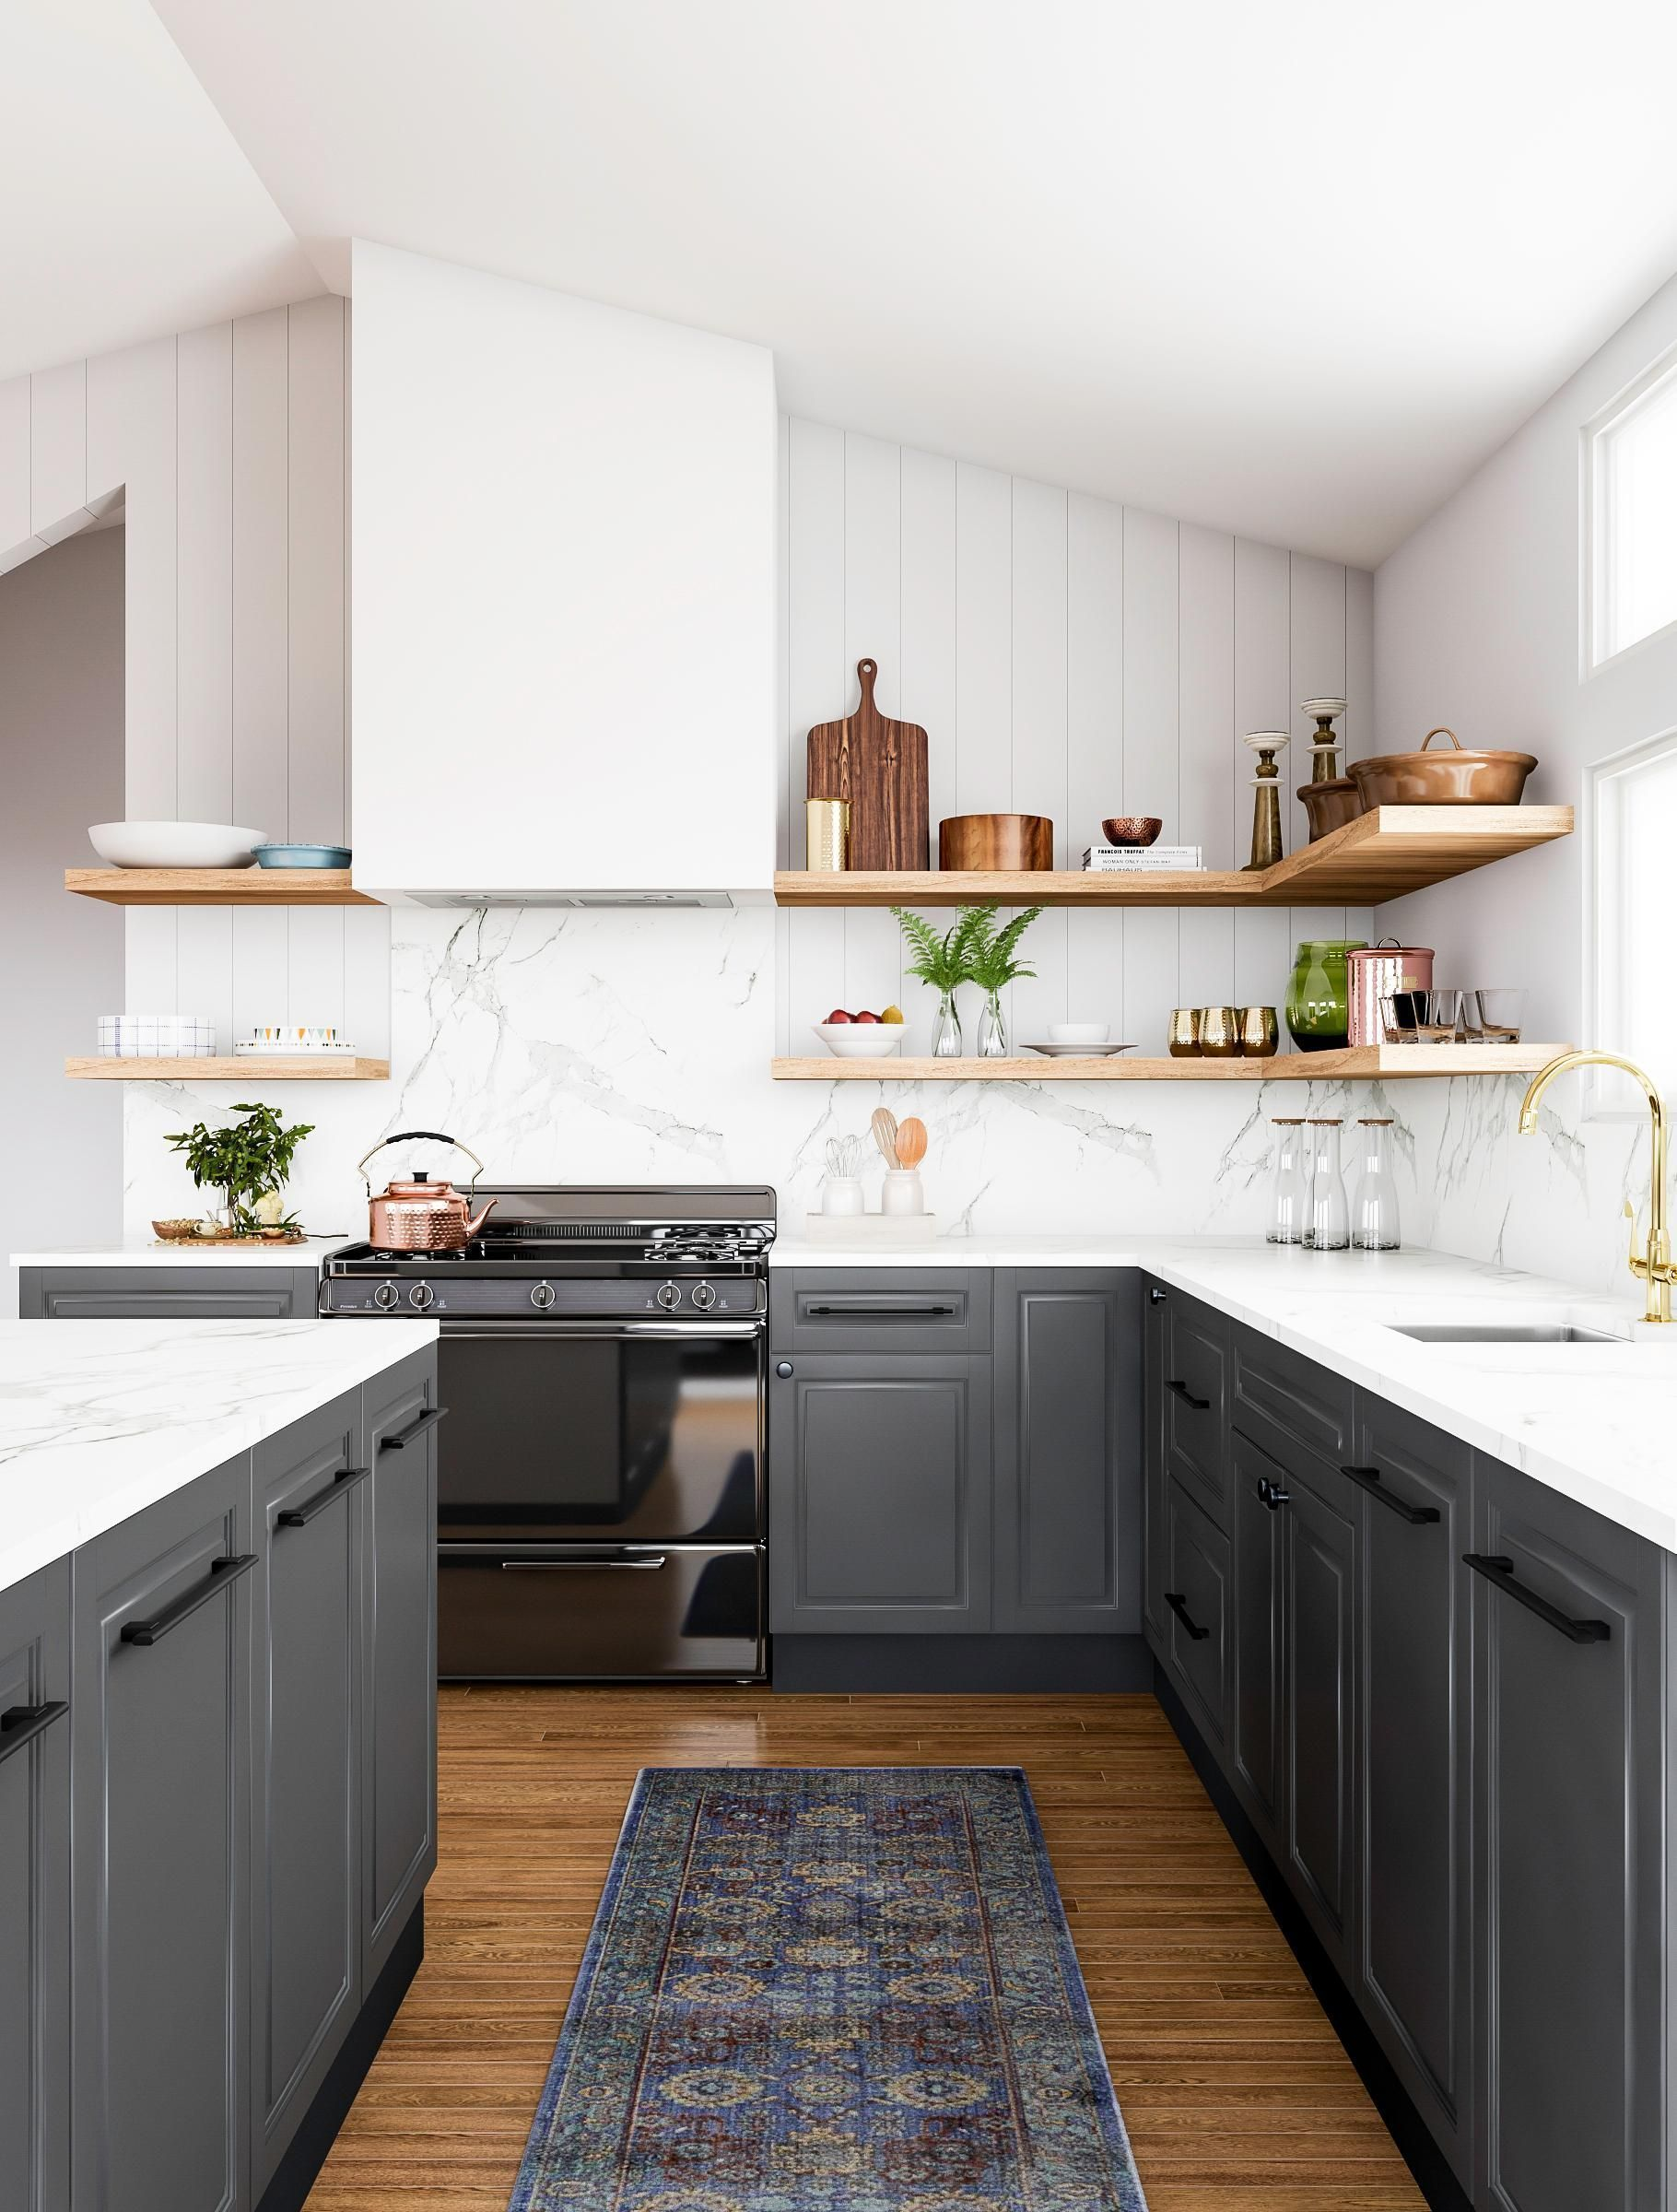 Kuche Welcome To Blog In 2020 Kitchen Interior Kitchen Renovation Gray Kitchen Backsplash